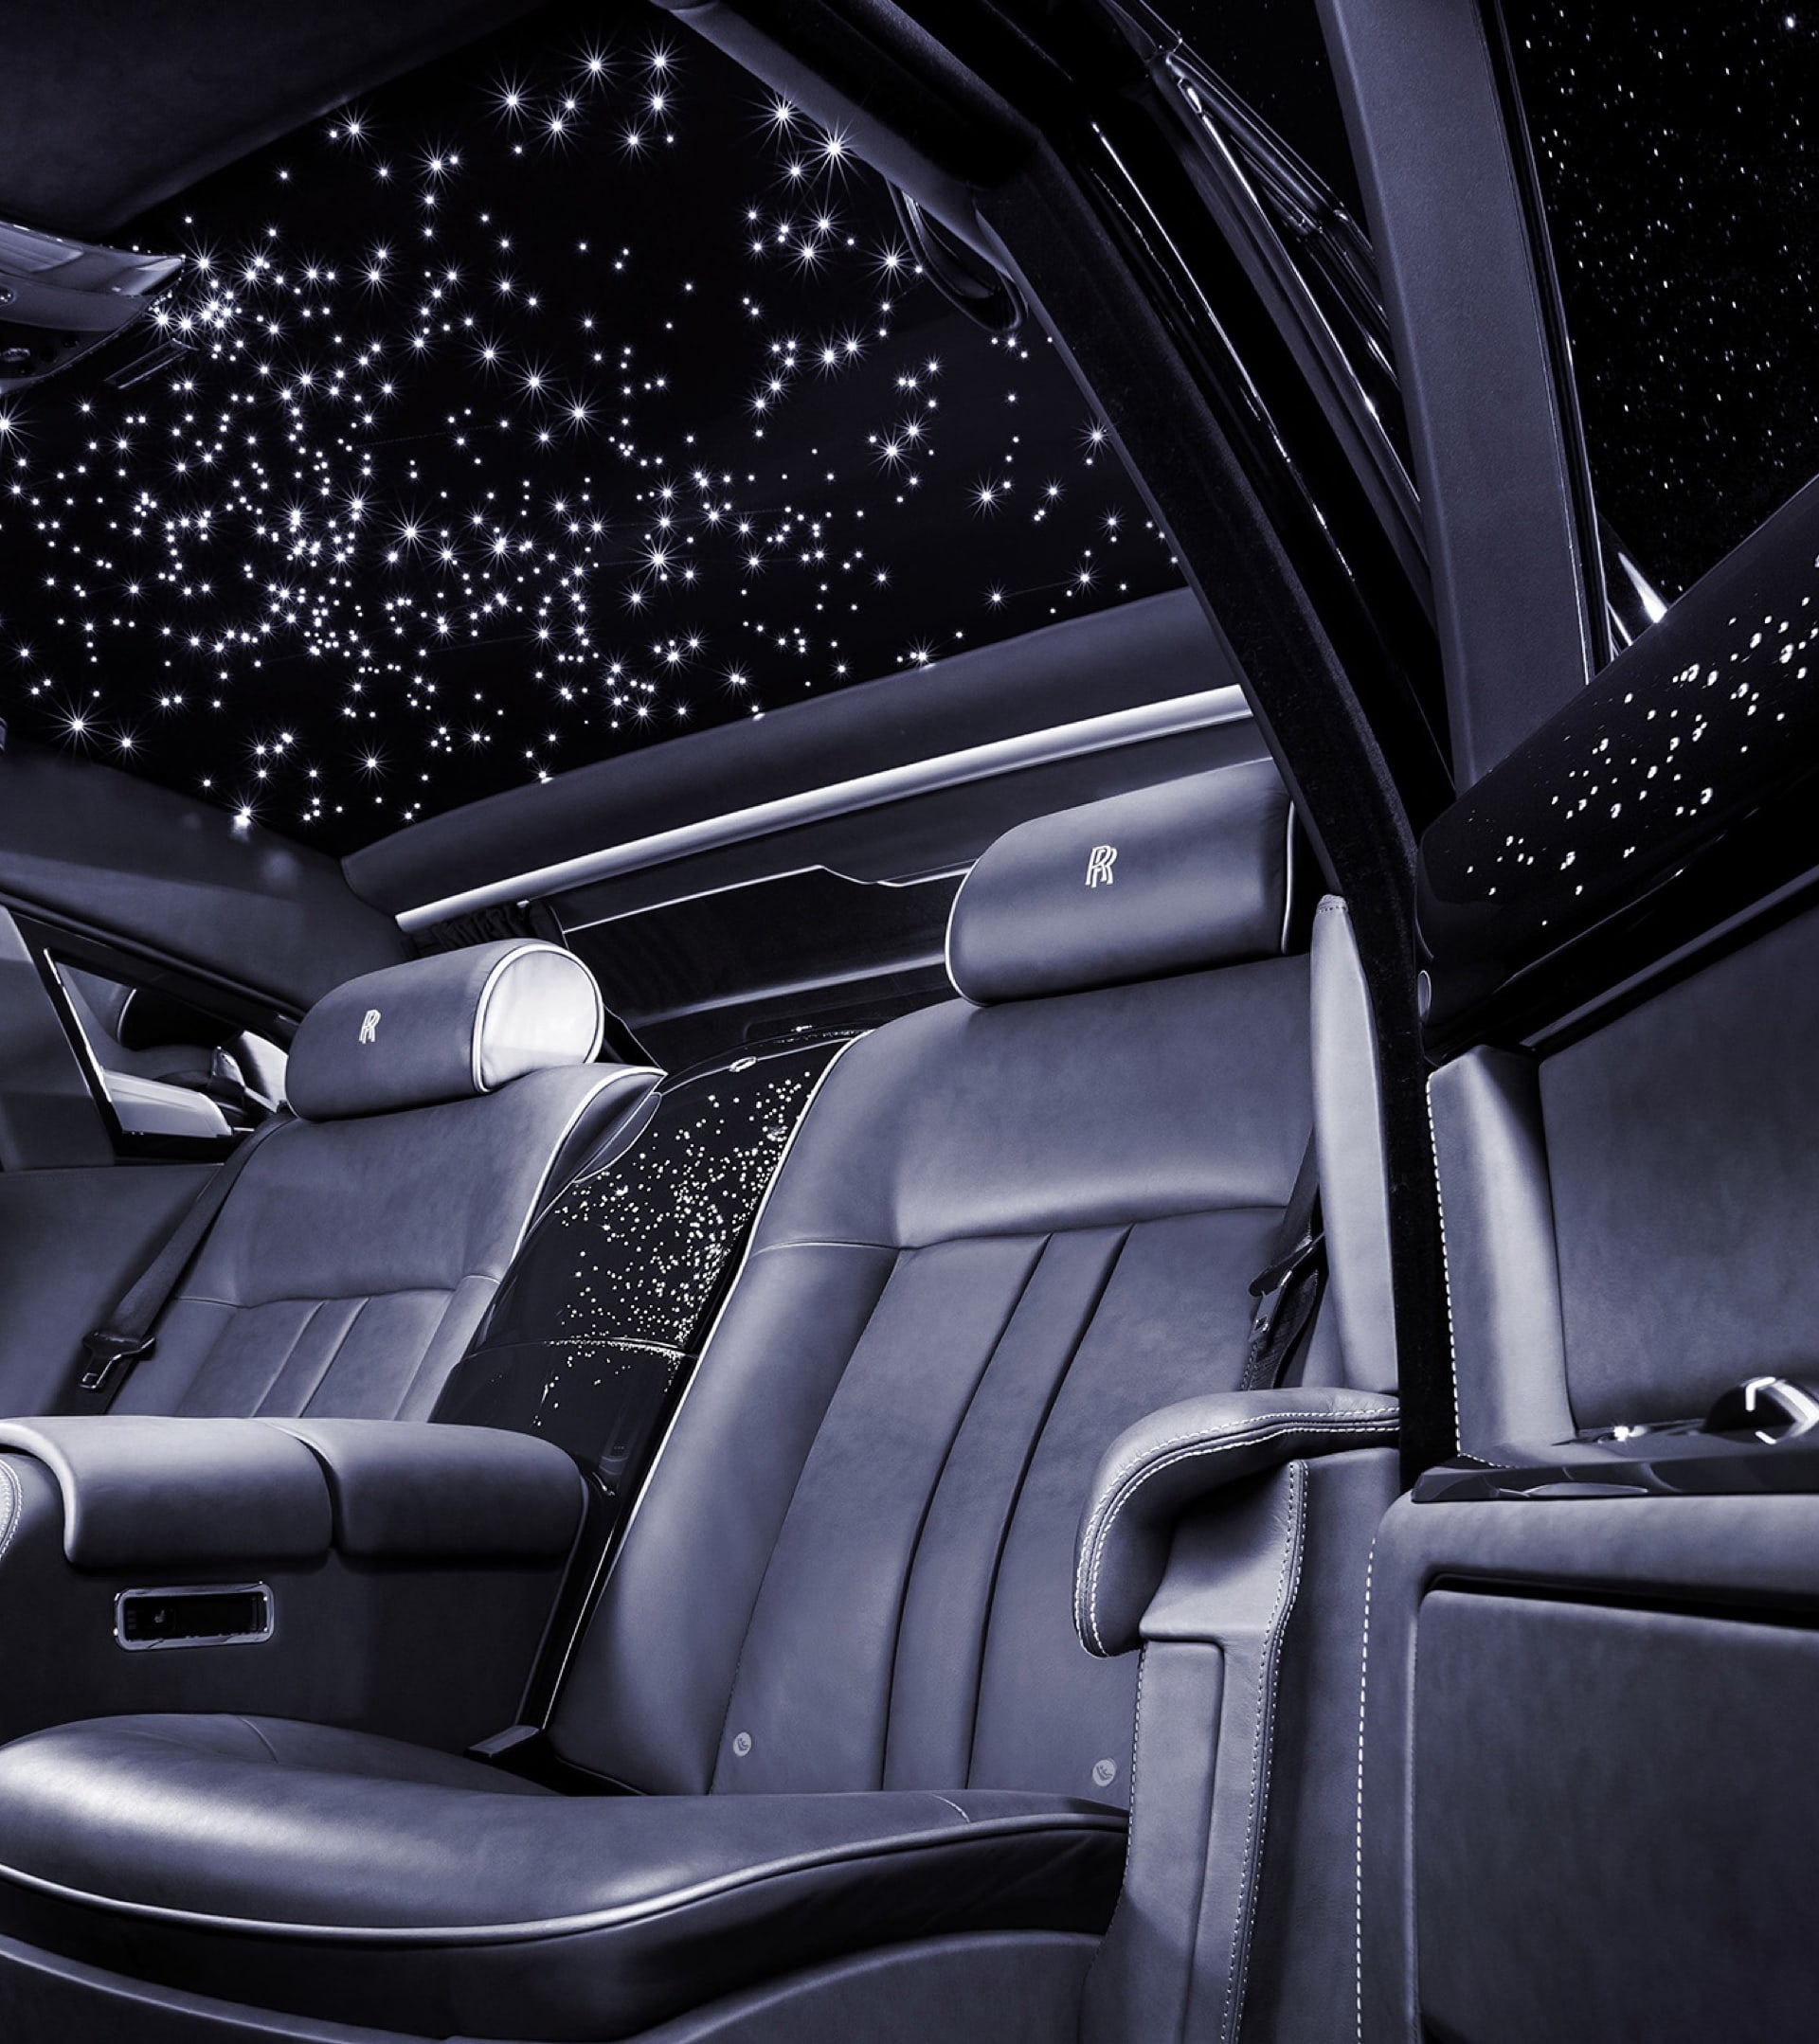 The interior of the one of a kind Celestial Phantom, featuring over 1,000 hand woven fibre optic lights.